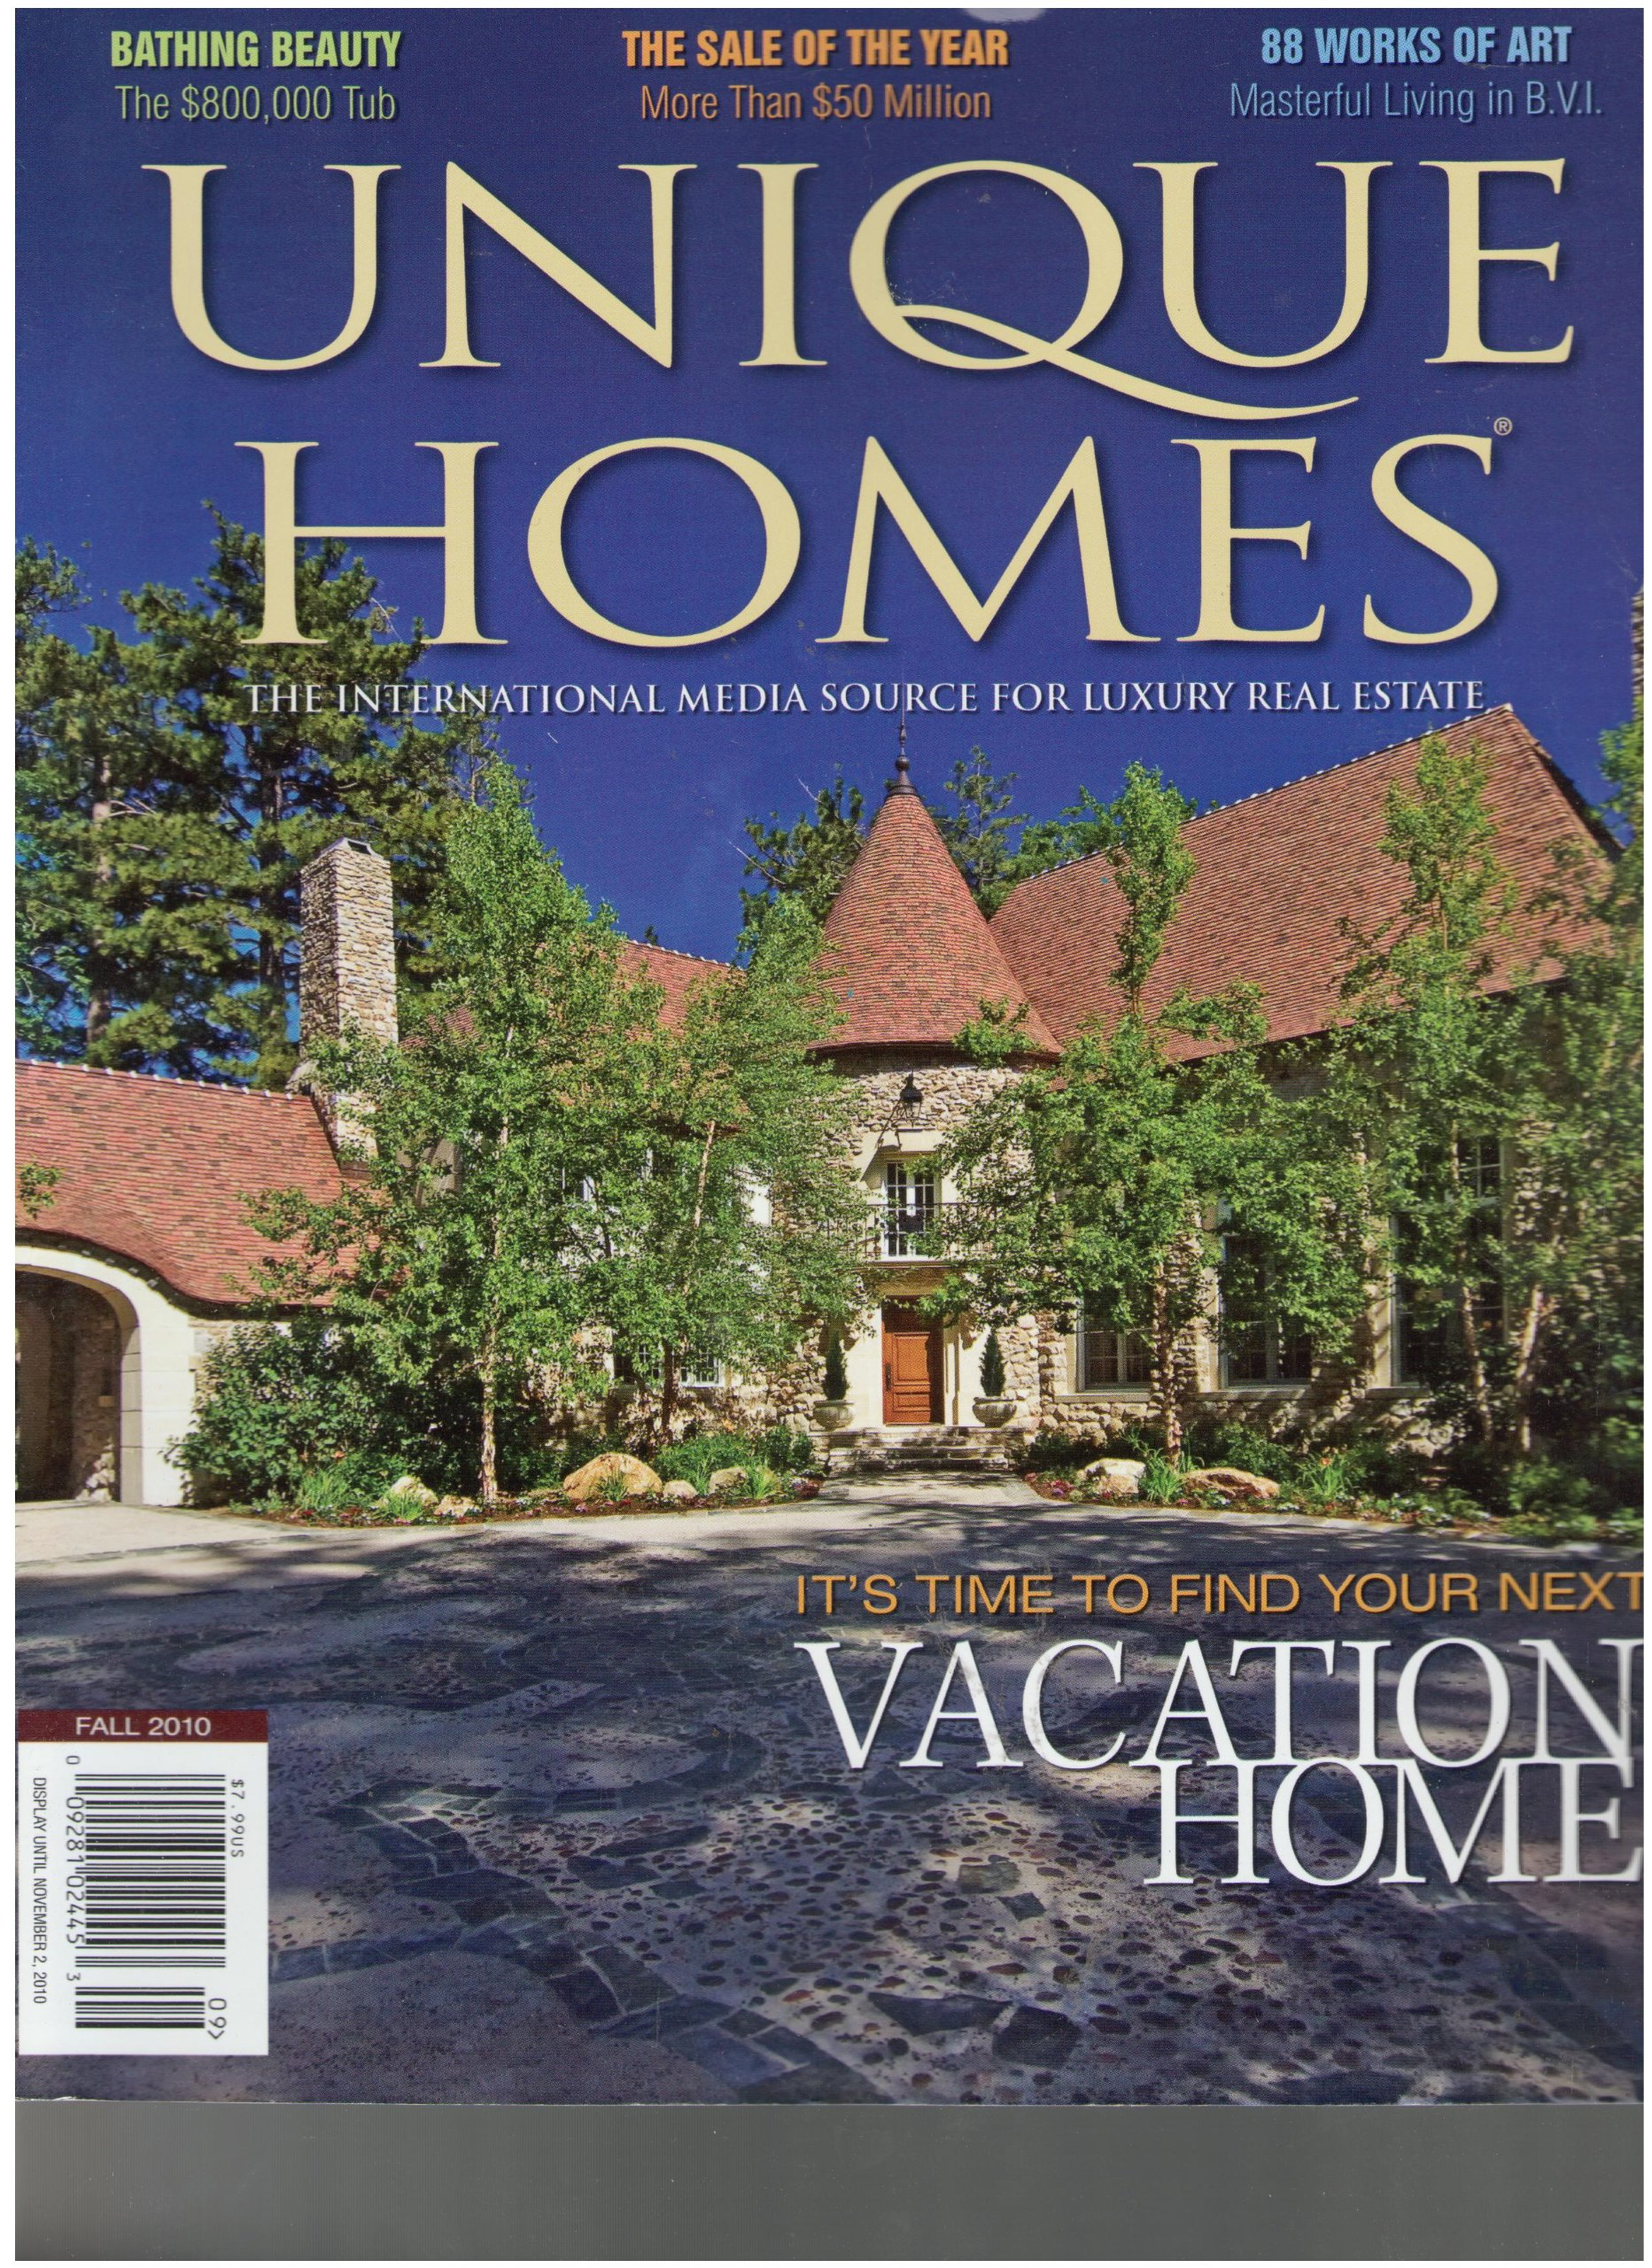 Unique Homes Magazine (Its Time To Find Your Next Vacation Home, Fall 2010)  Single Issue Magazine U2013 2010